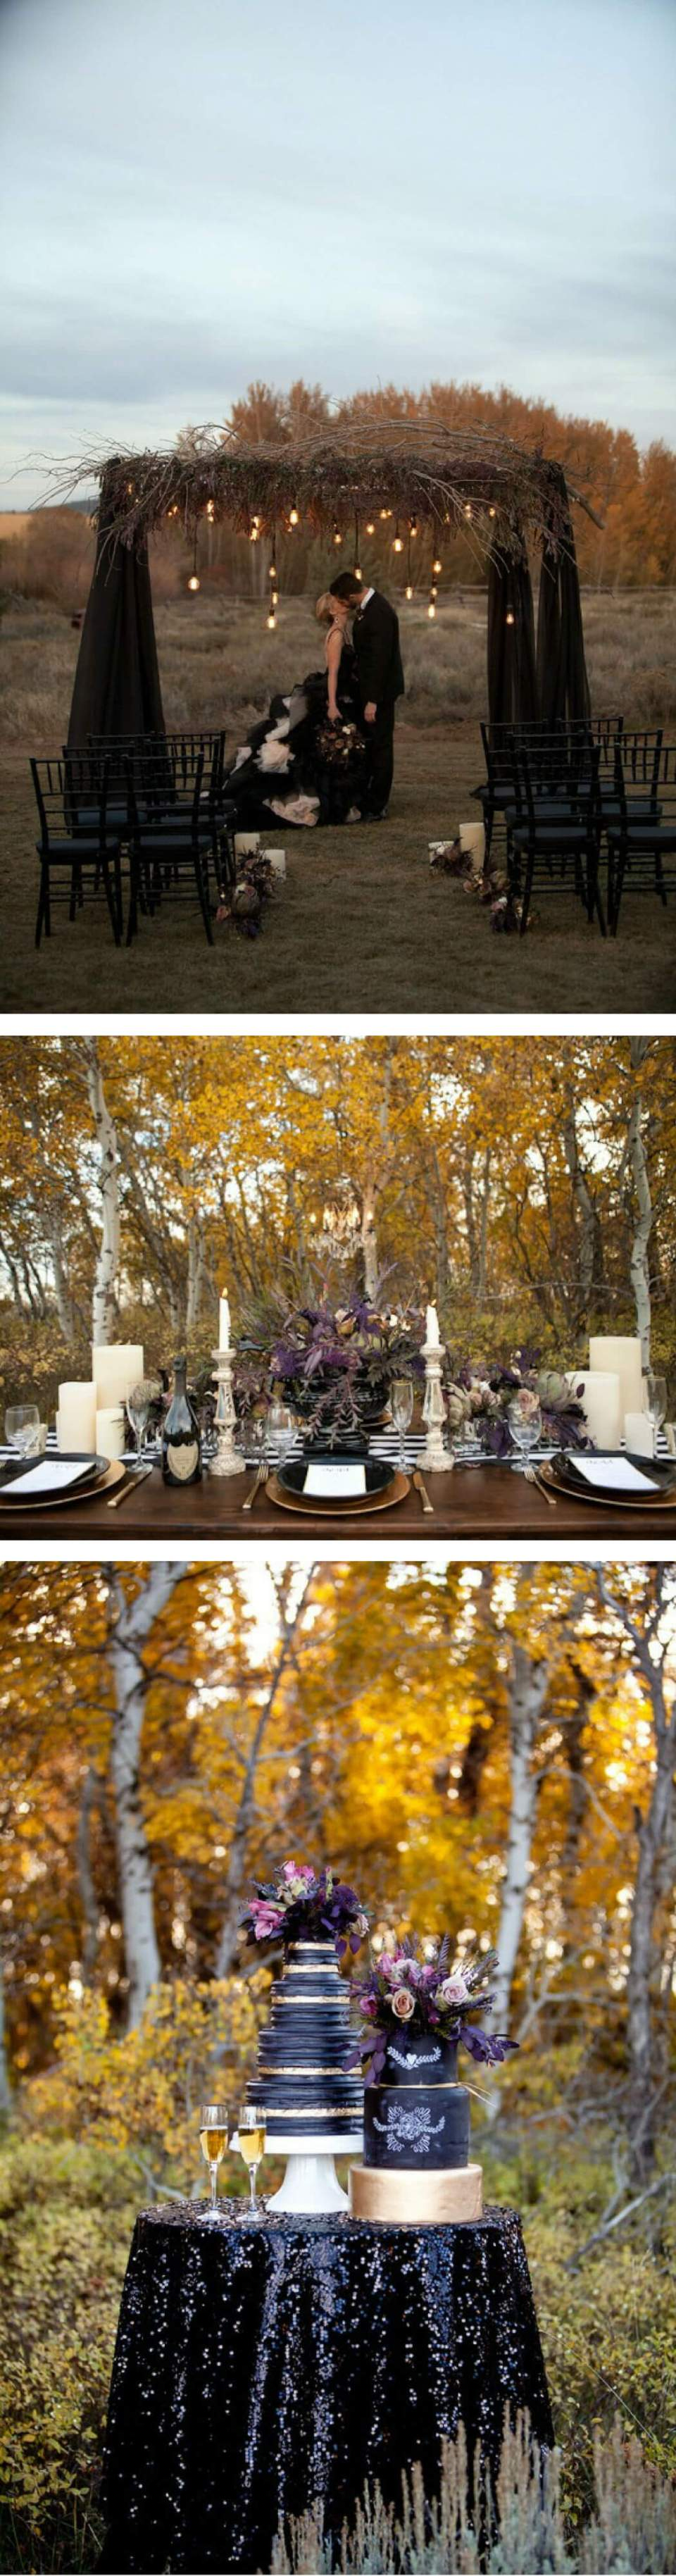 Spring Shores Lodge Idaho Styled Wedding Shoot | Halloween Wedding Theme Ideas - Farmfoodfamily.com